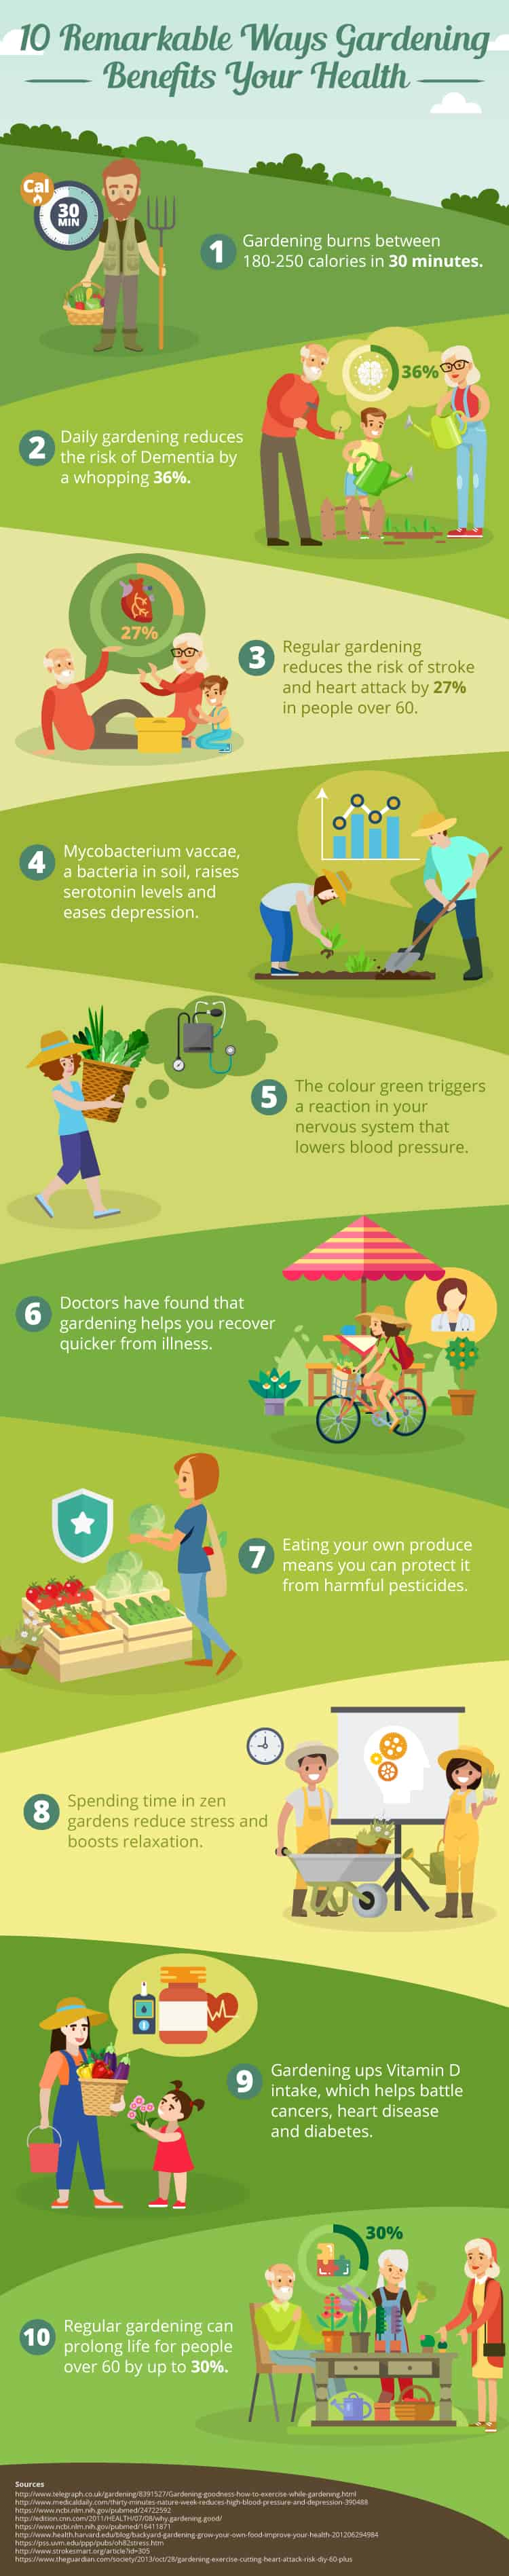 10 Remarkable Ways Gardening Benefits Your Health